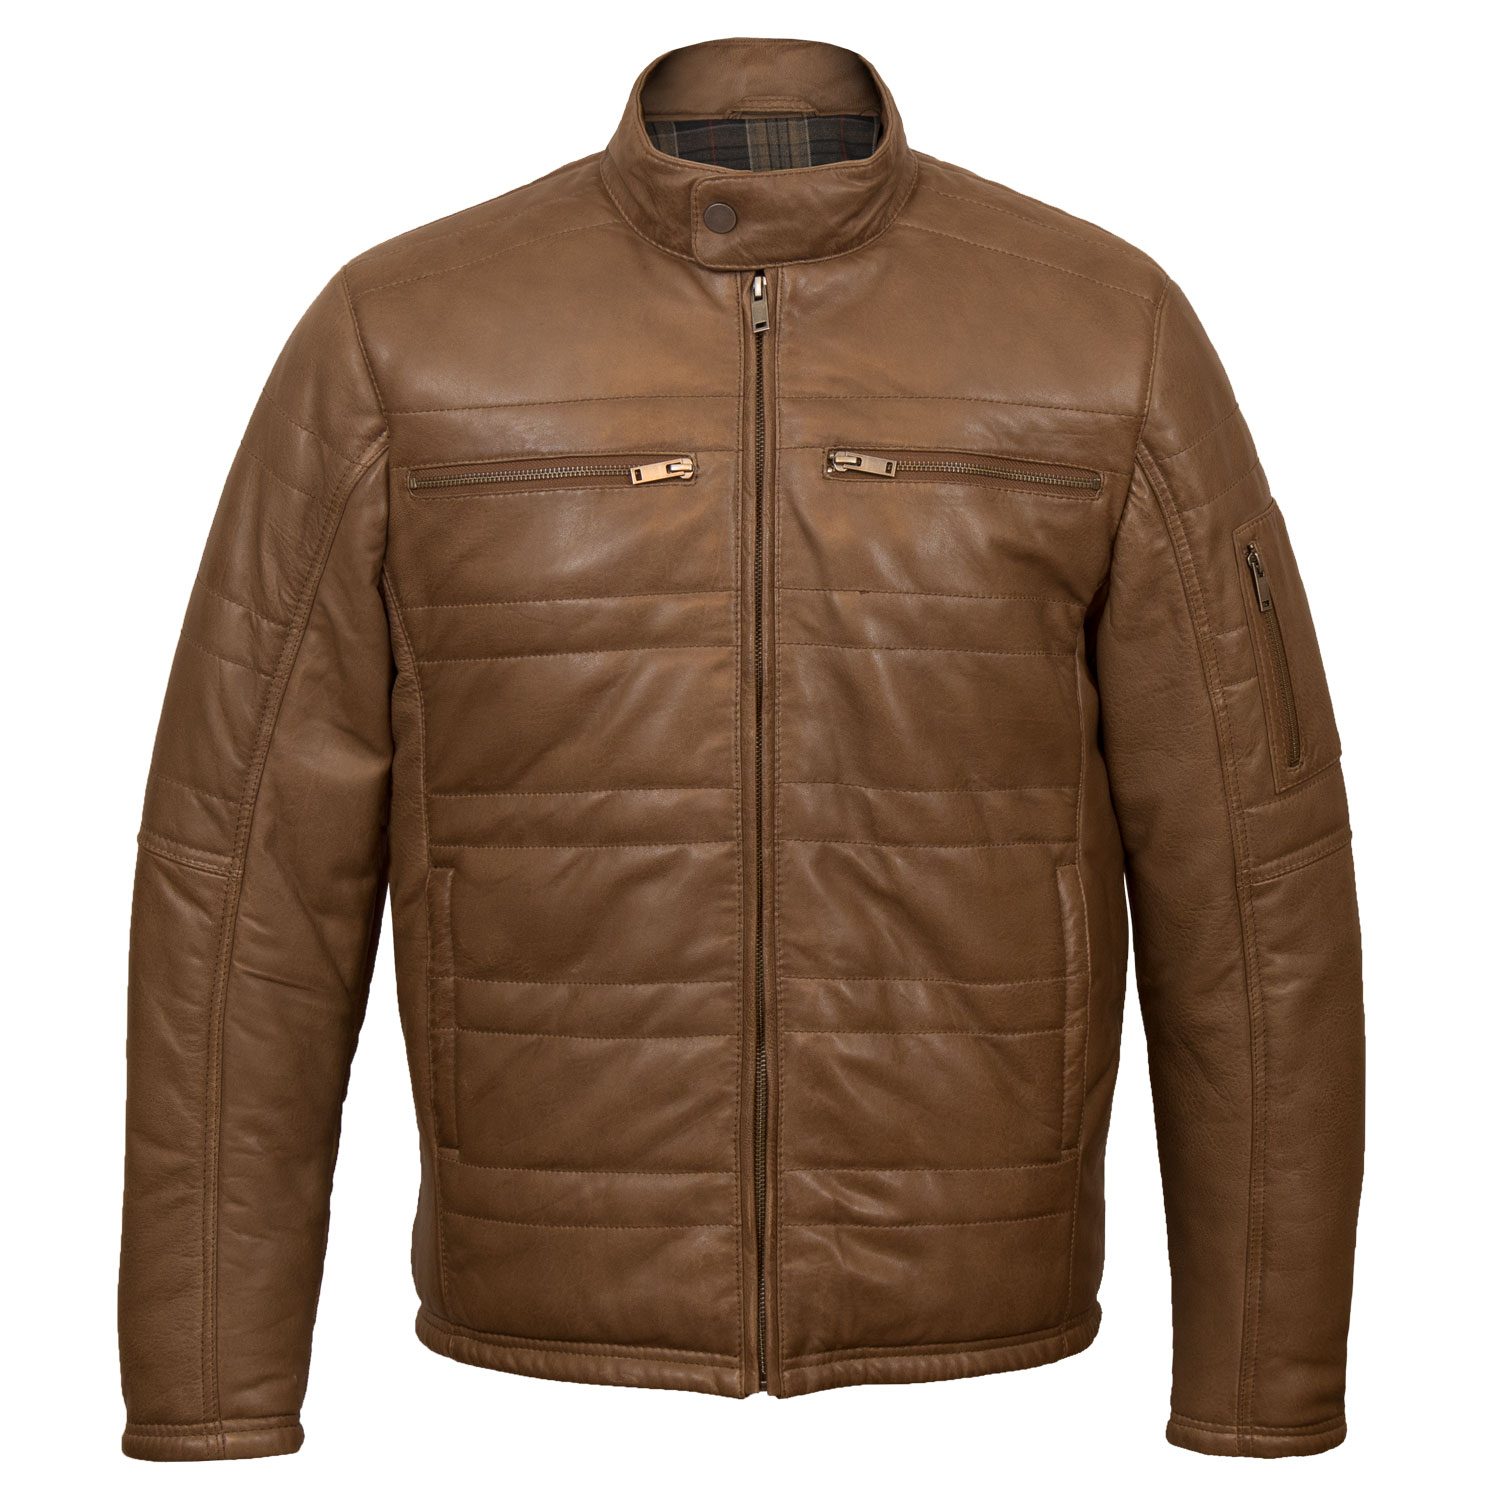 Mens Brown Padded Leather Jacket: Paul